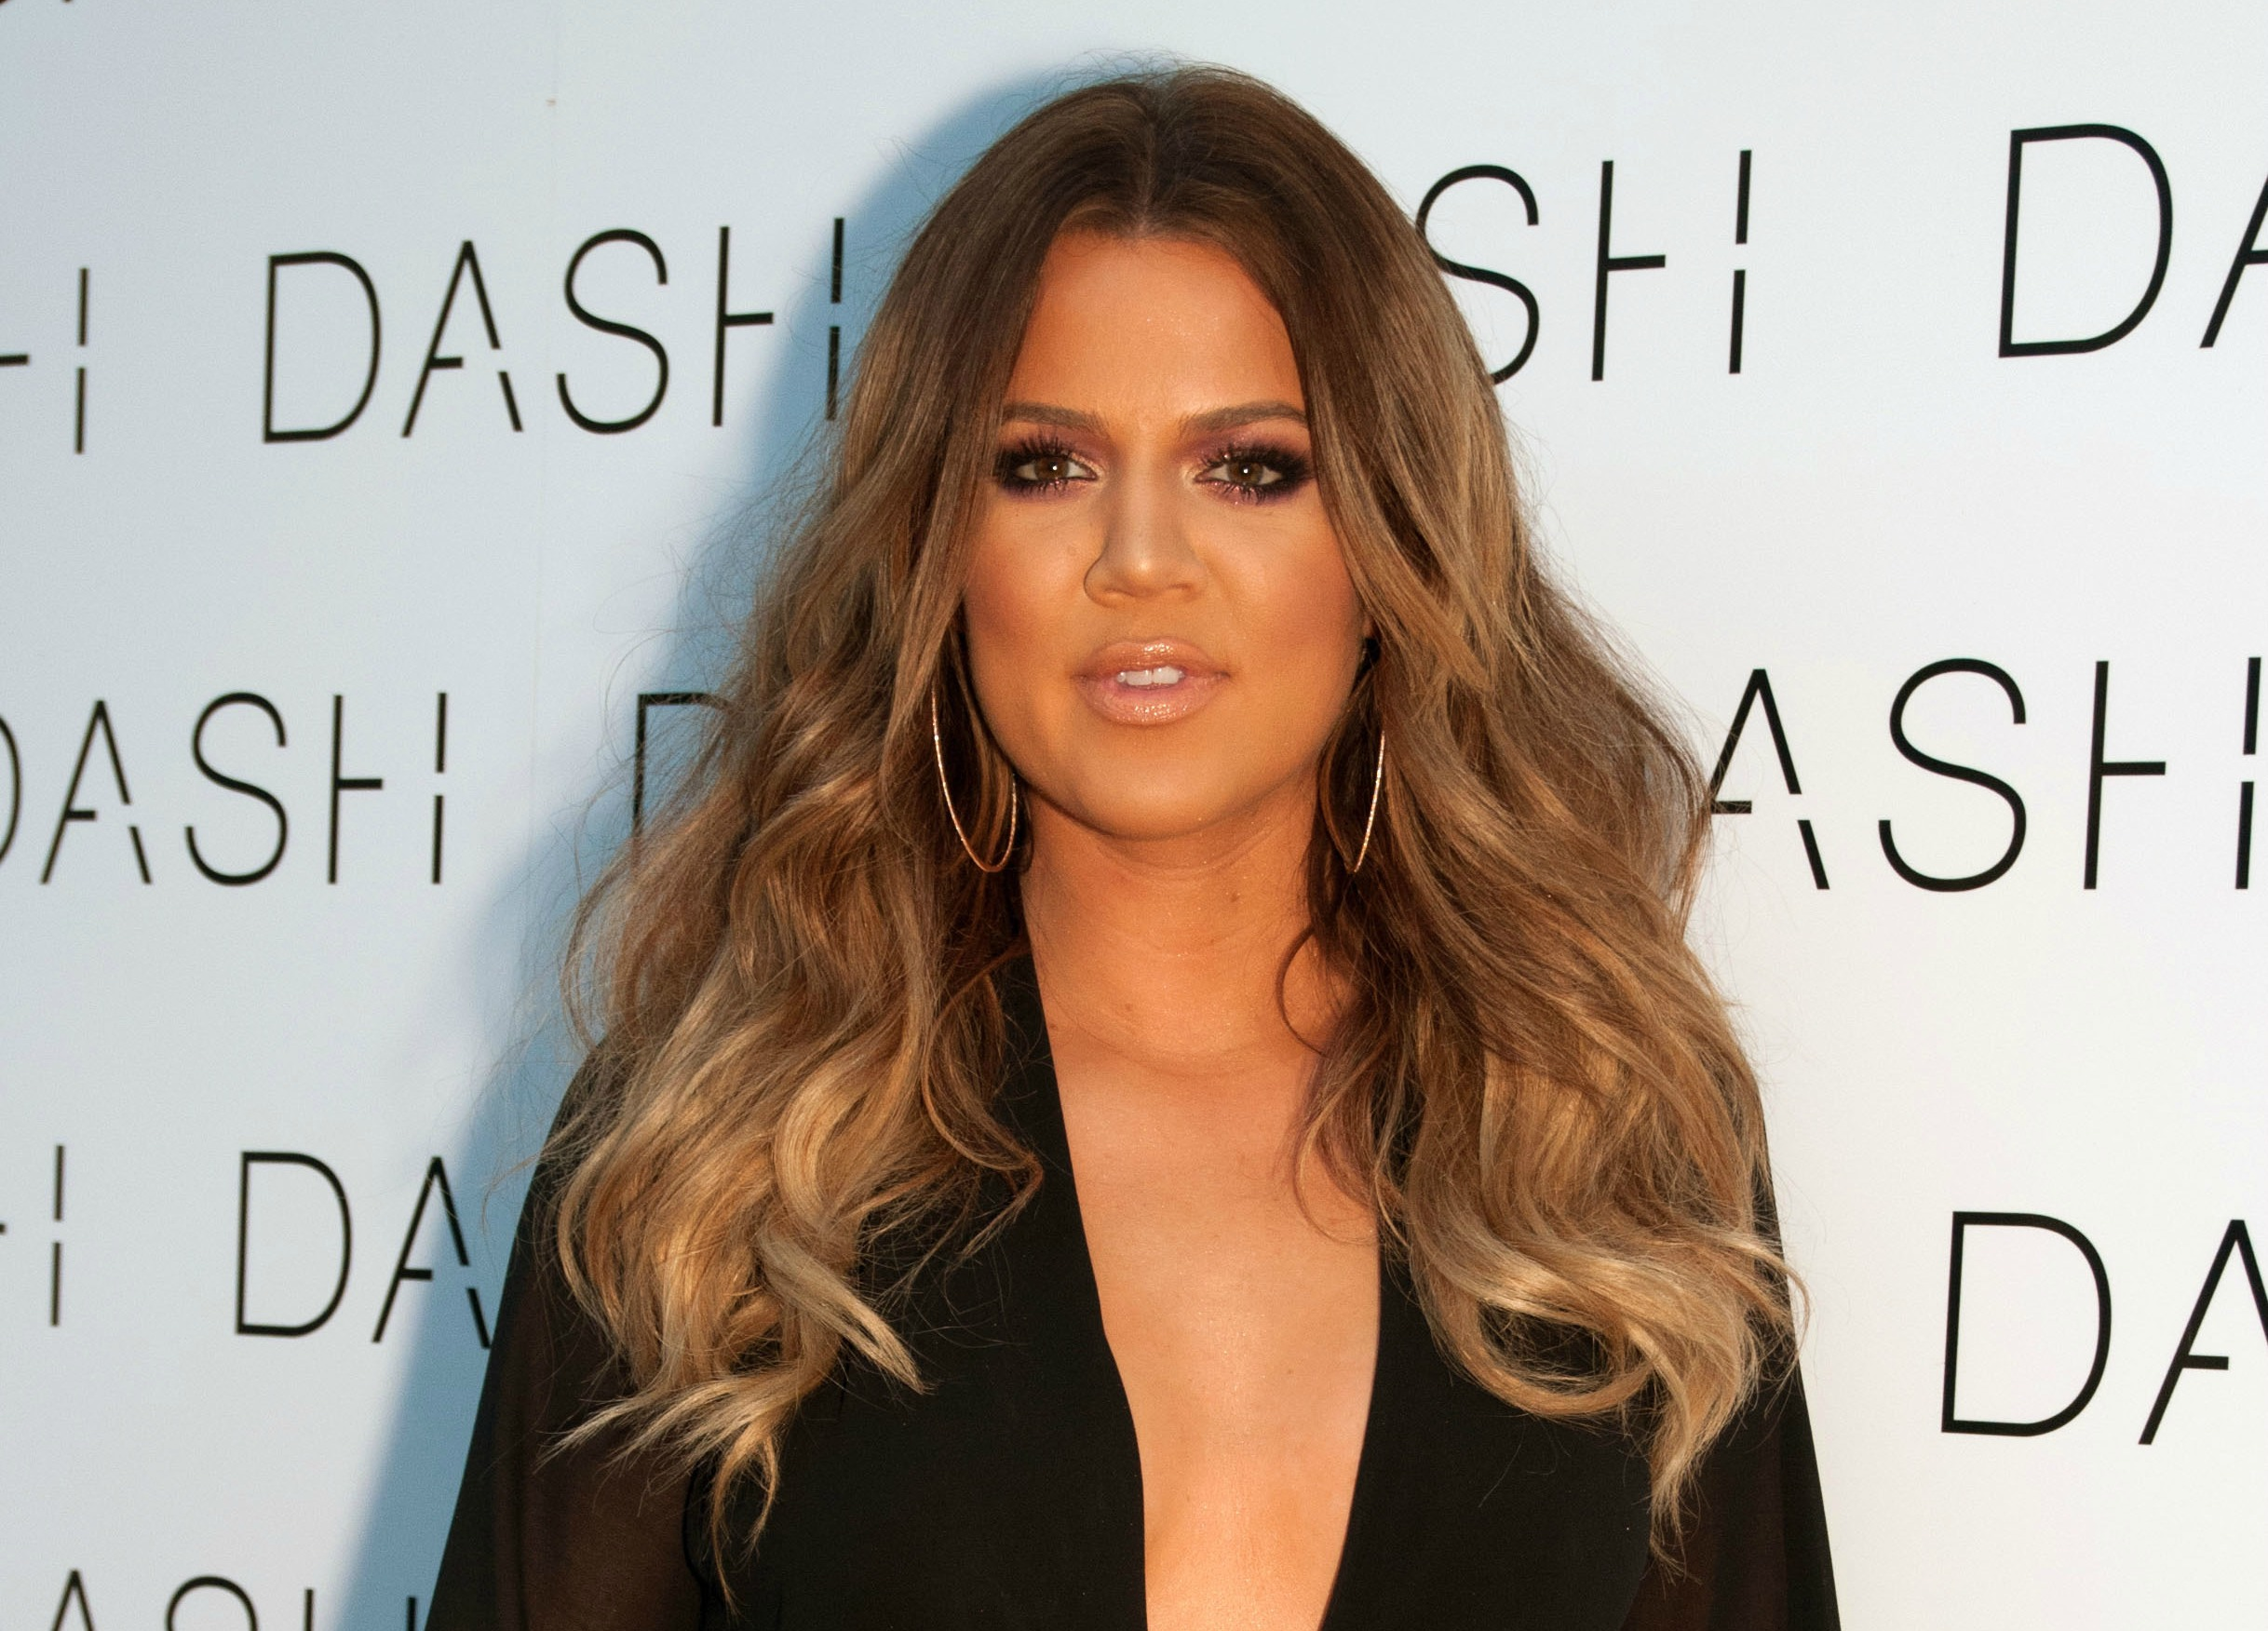 Khloé Kardashian shares adorable photo of her niece North West